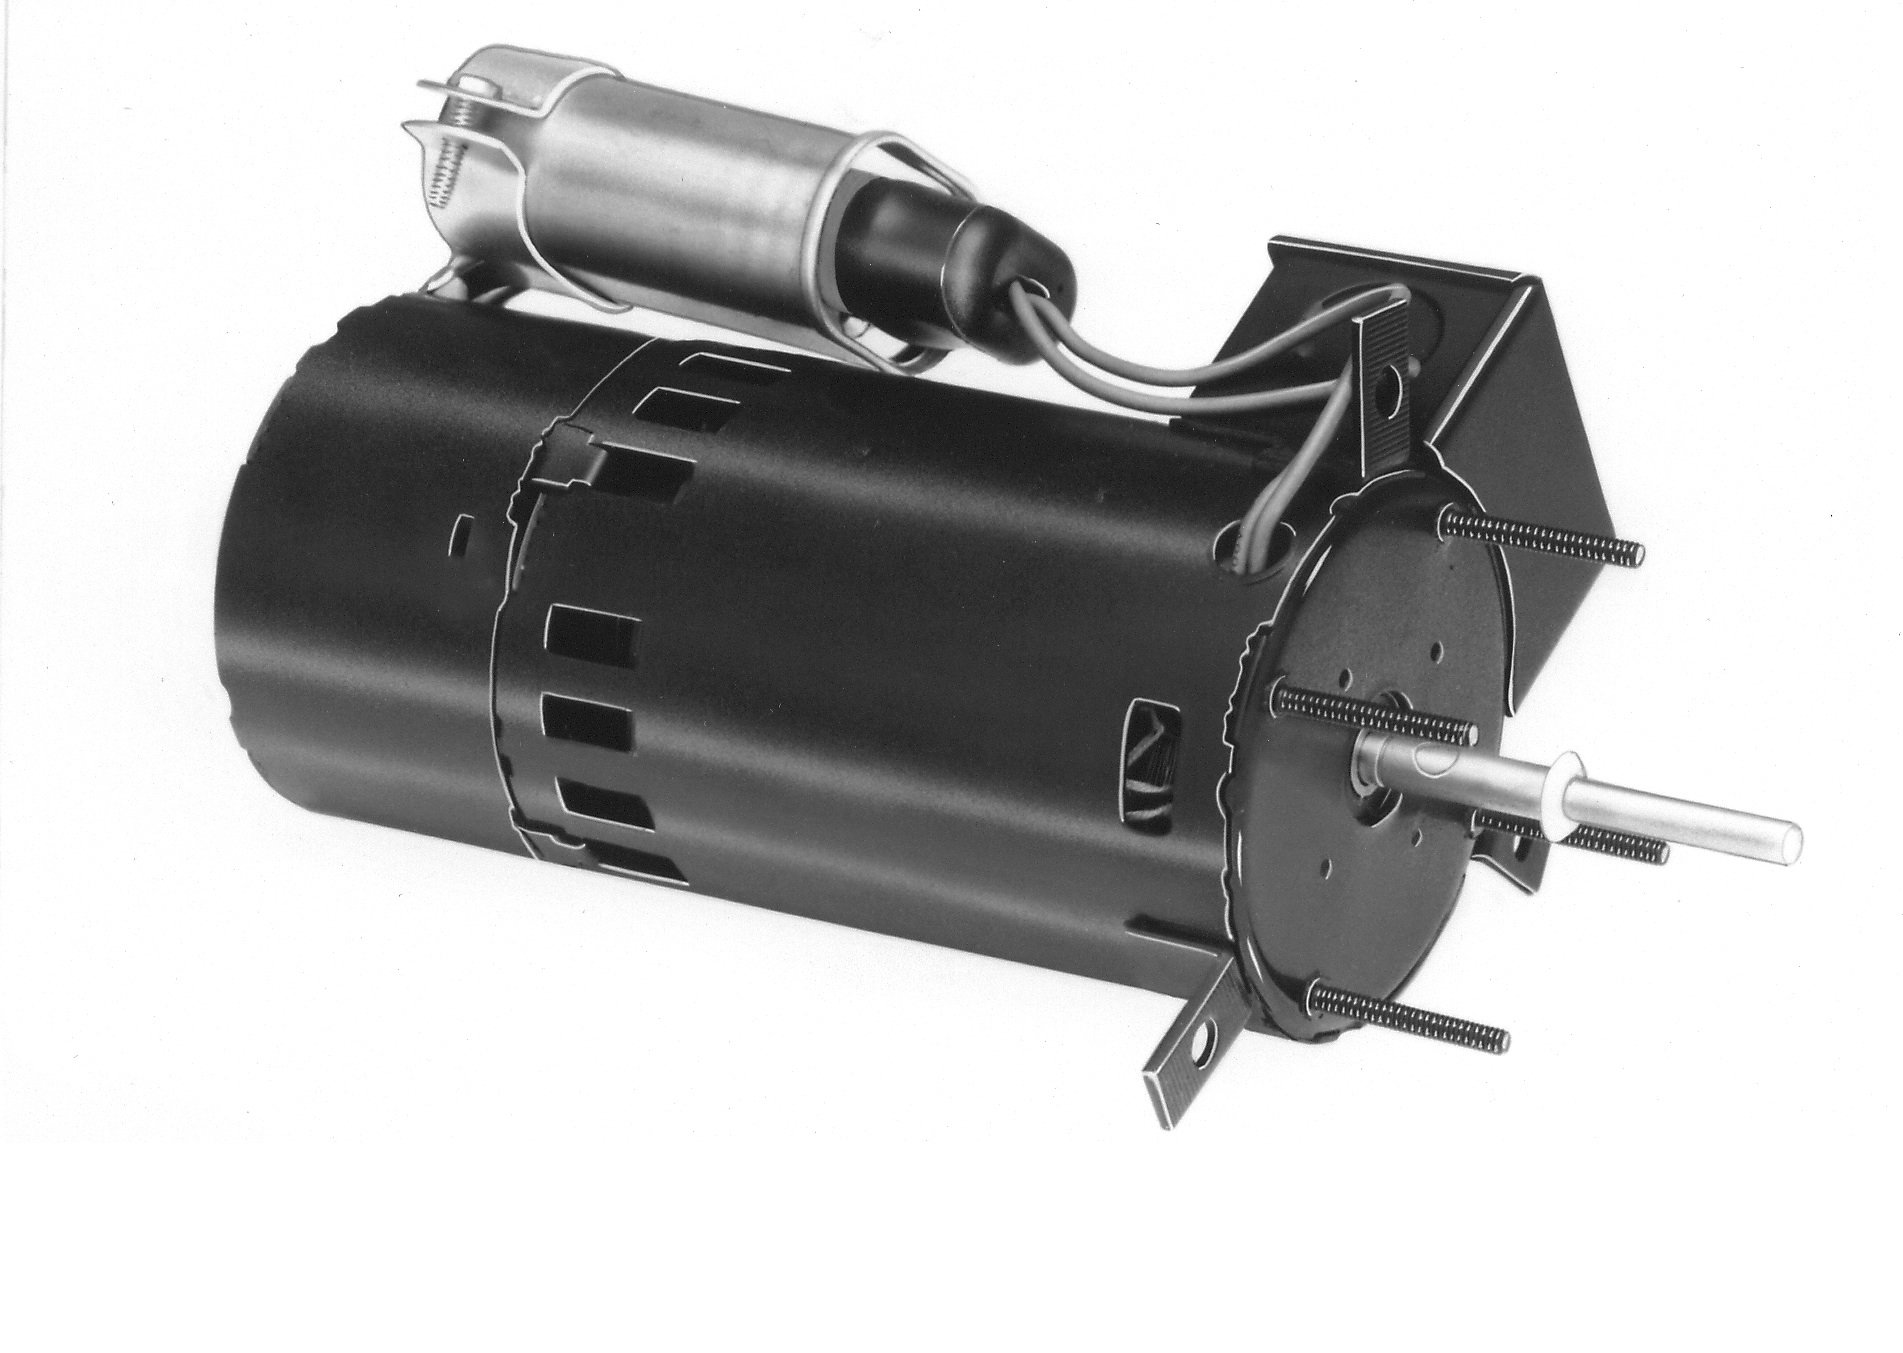 Fasco D410 3.3'' Frame Open Ventilated Permanent Split Capacitor Flue Exhaust and Draft Booster Blower Motor withBall Bearing, 1/10HP, 3000rpm, 115V, 60Hz, 1.5 amps